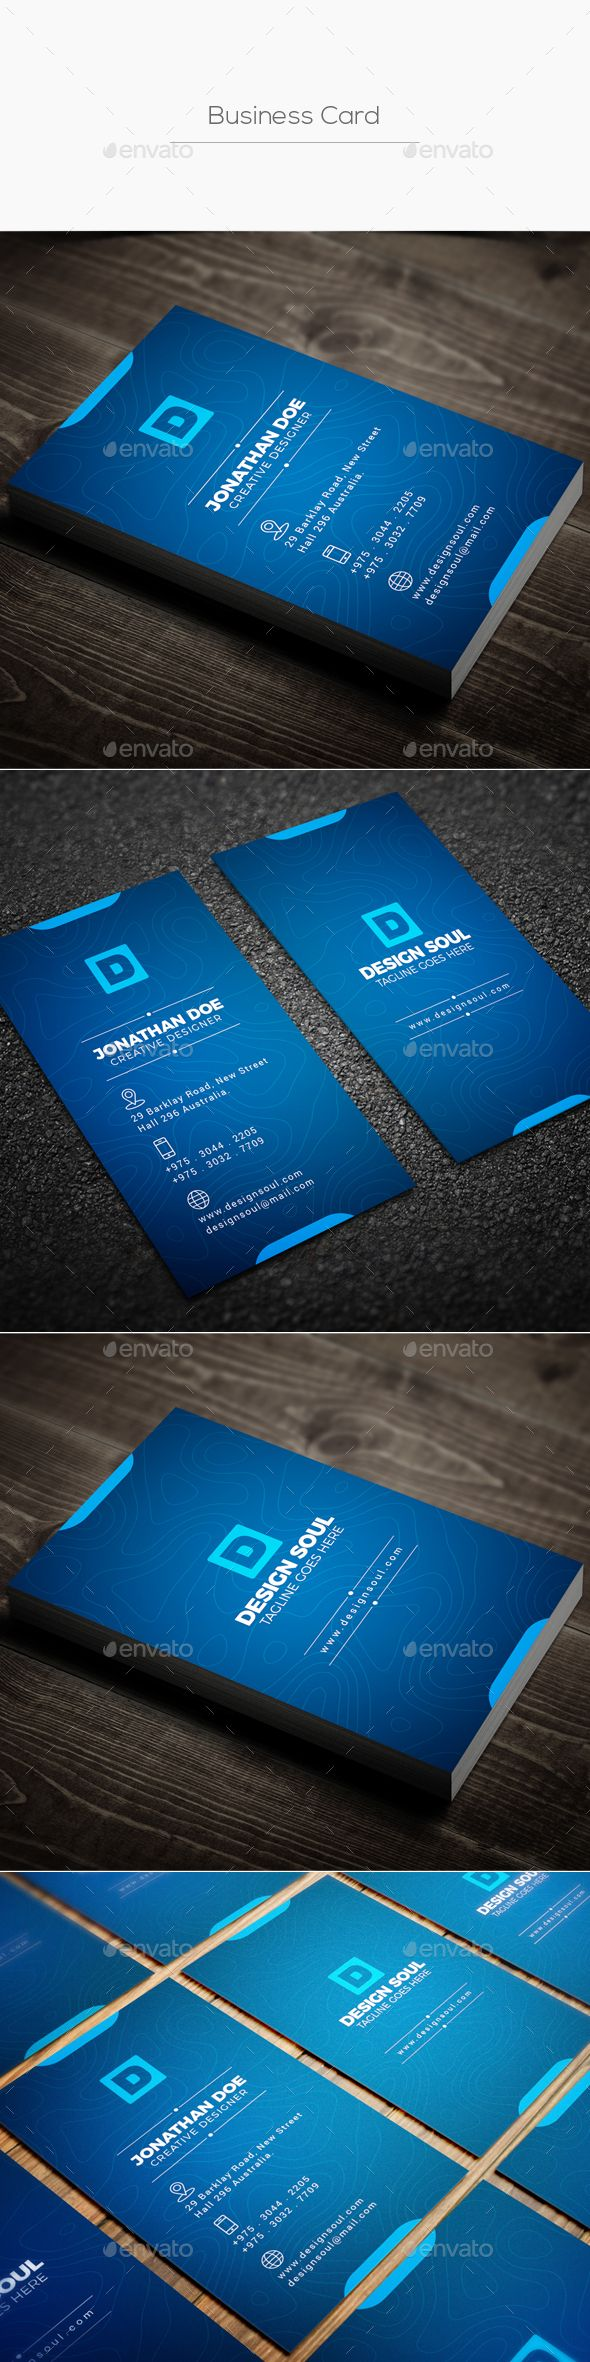 Business Card Business Cards Print Templates Download Business Card Printing Business Cards Free Business Cards